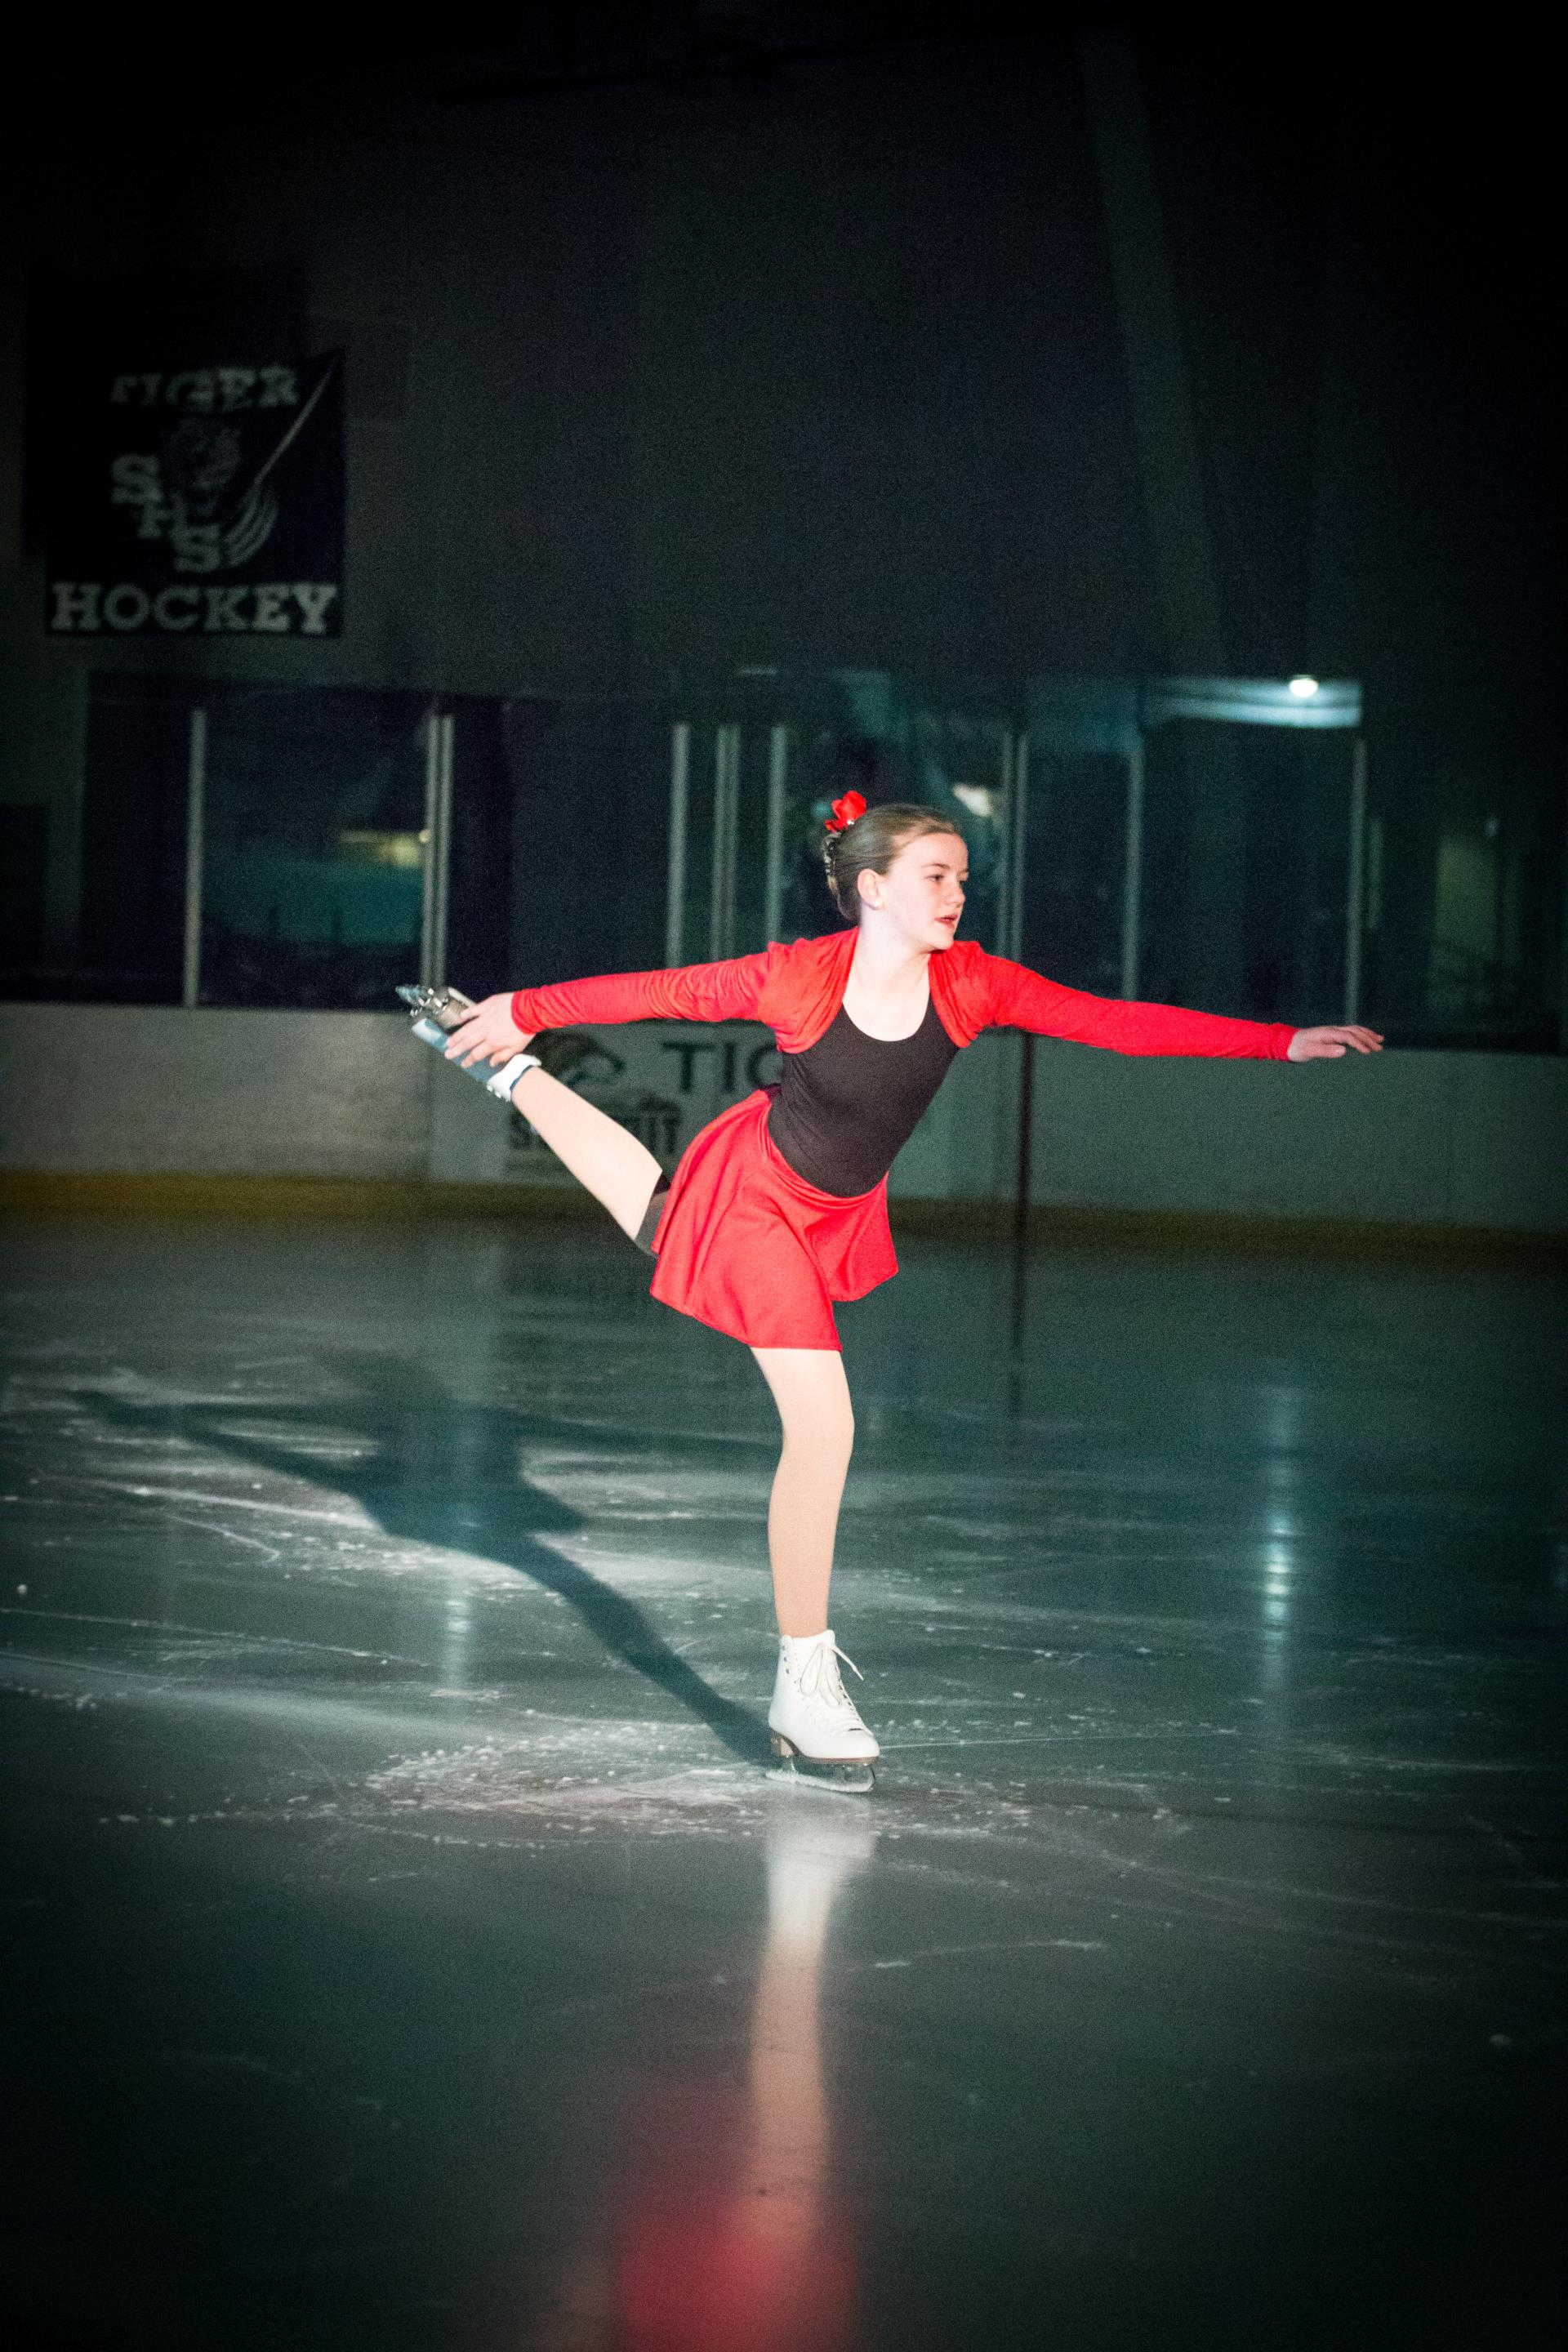 Girl in red and black dress skating on one leg in spotlight